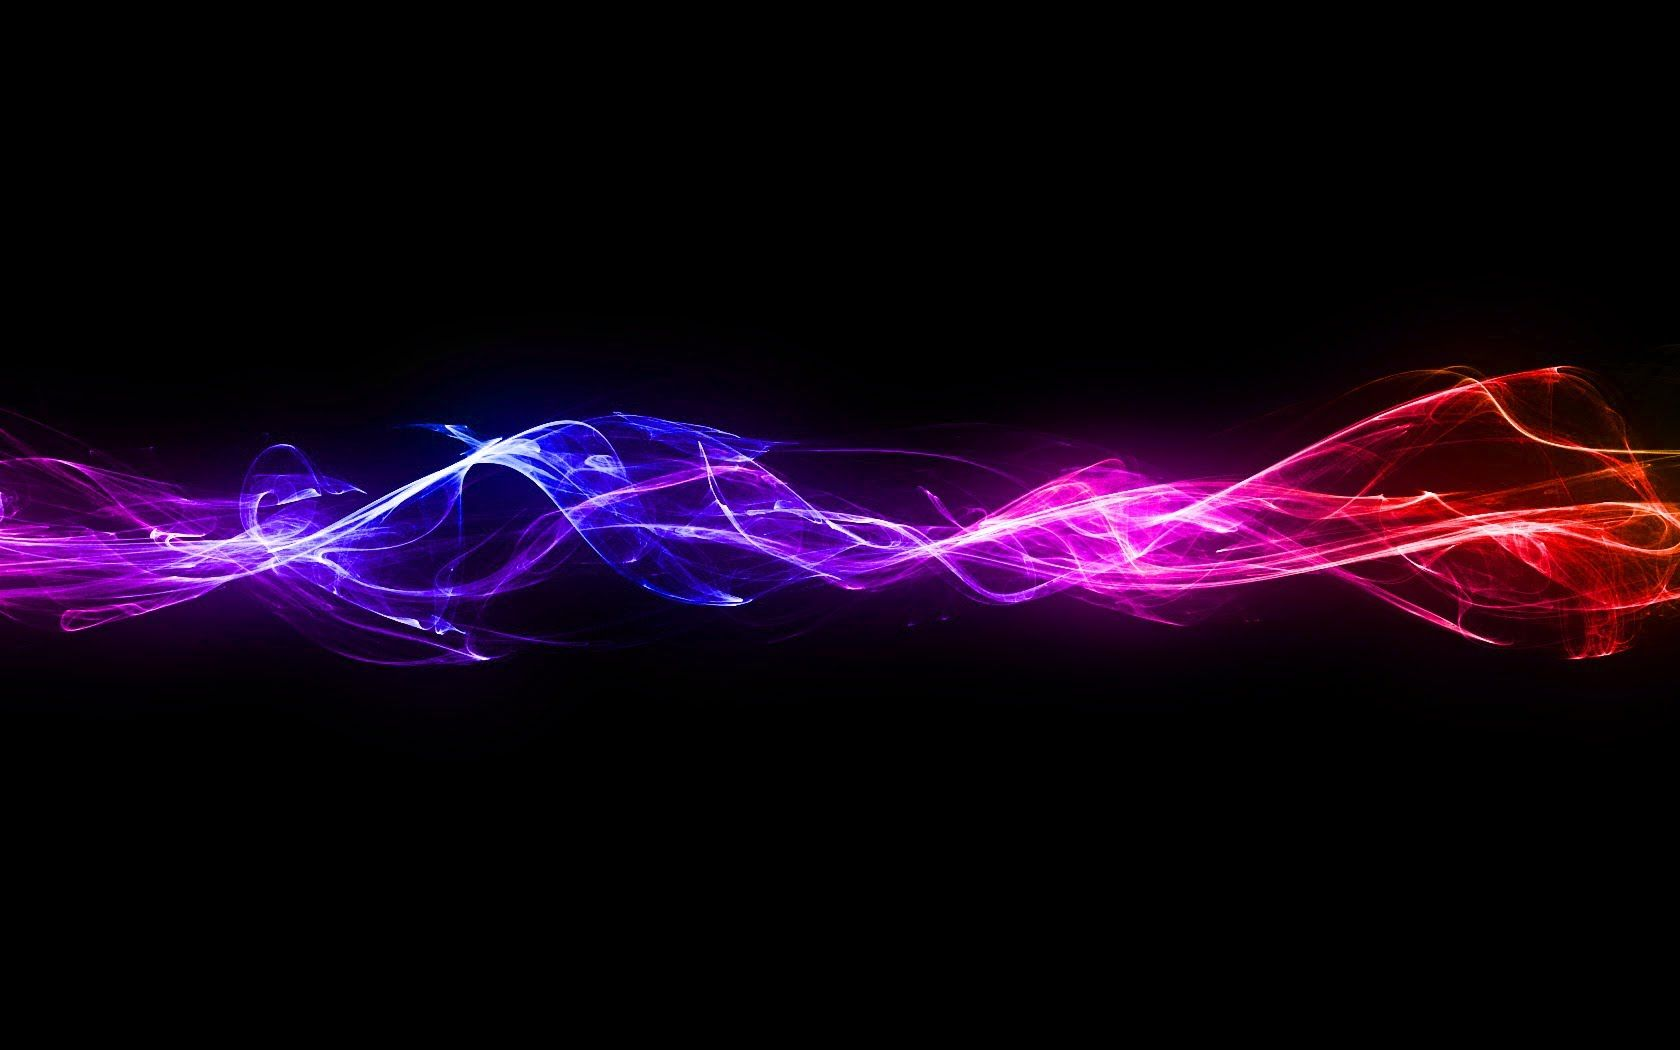 New 3 Epic Dubstep Mix Epic Bass Drops By F4st3st S0und Rainbow